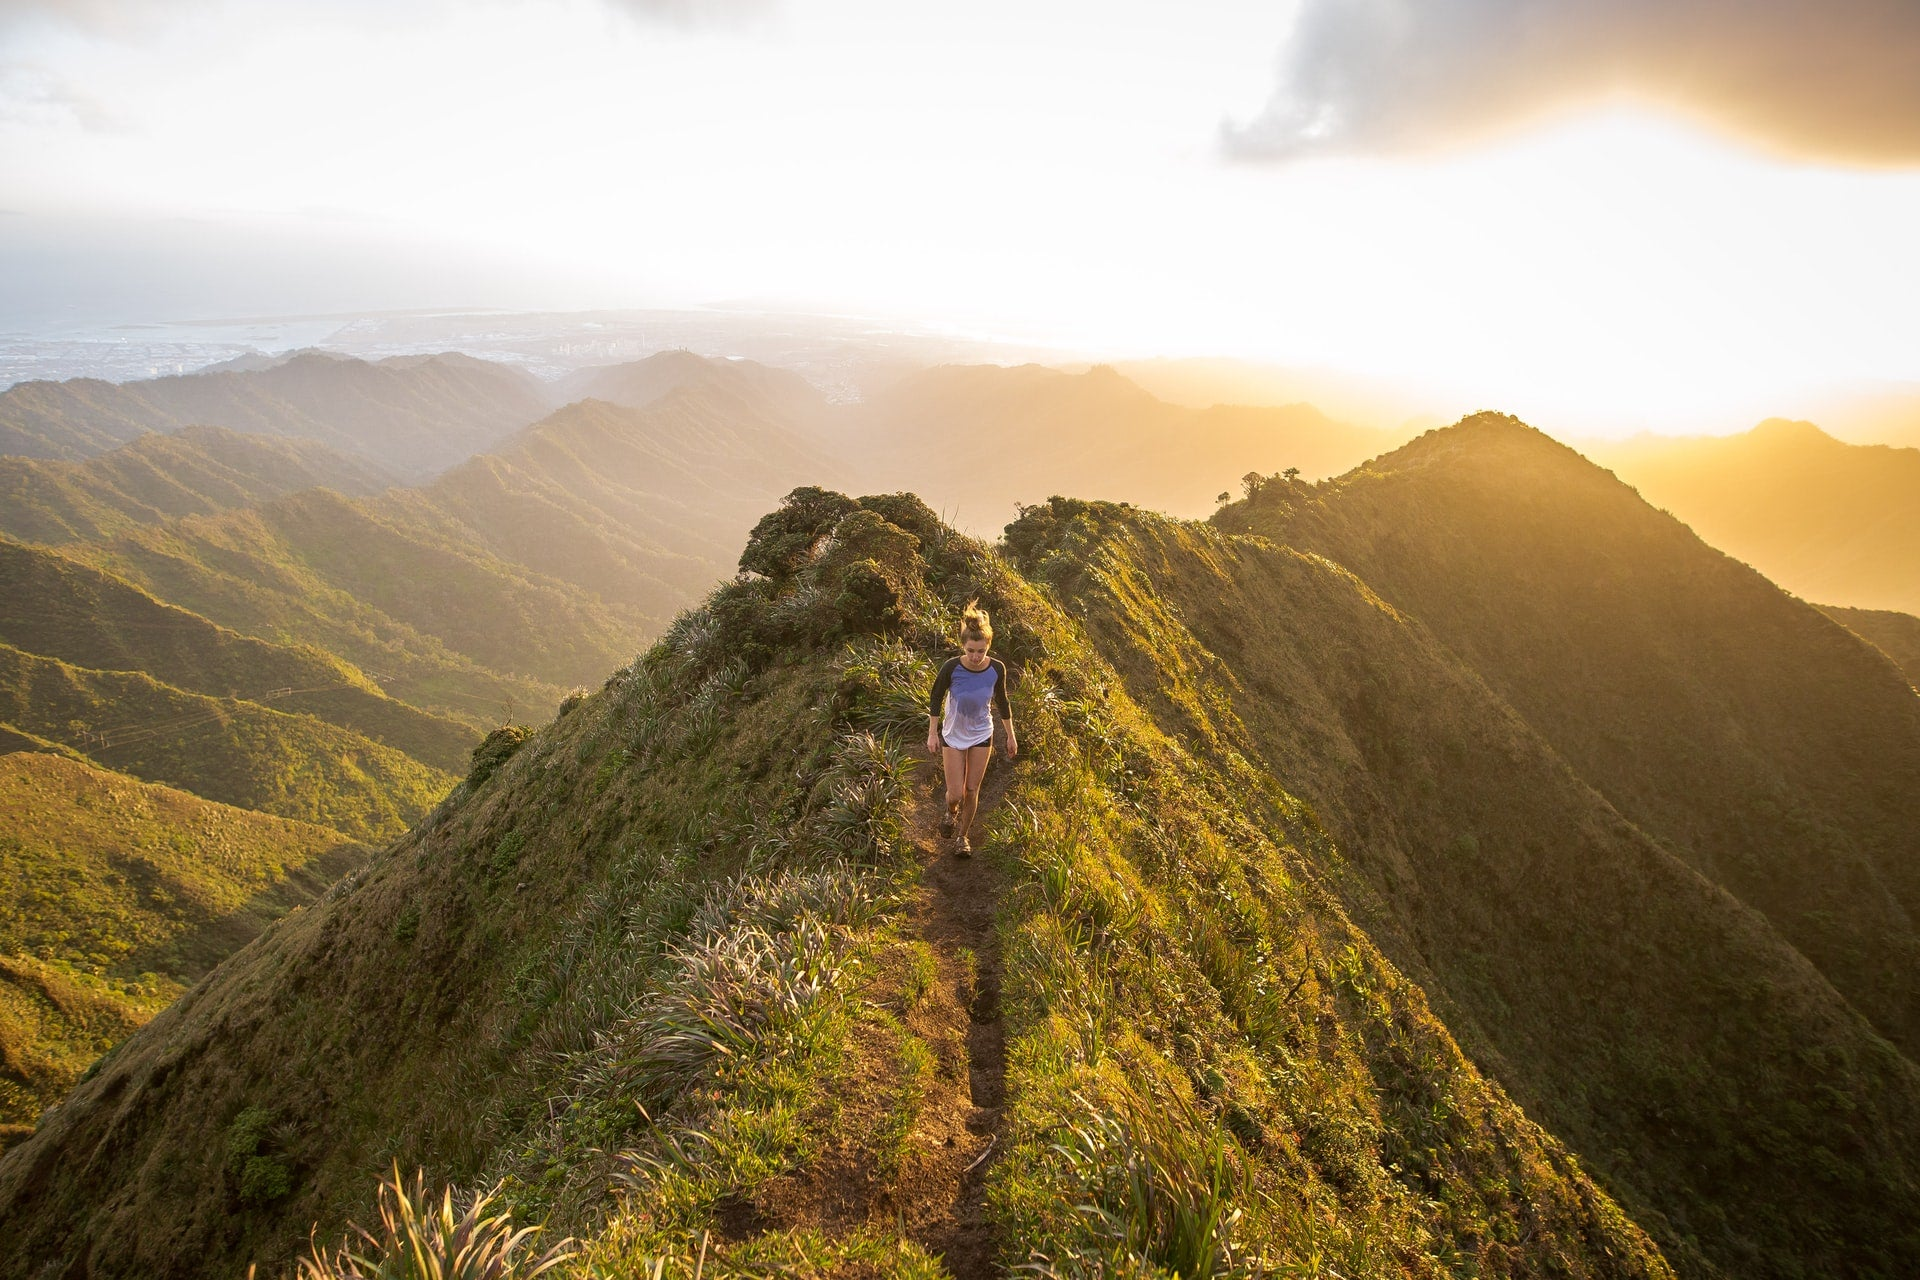 young woman hiking on lush green mountaintop with sunrise and distant mountain ranges in background